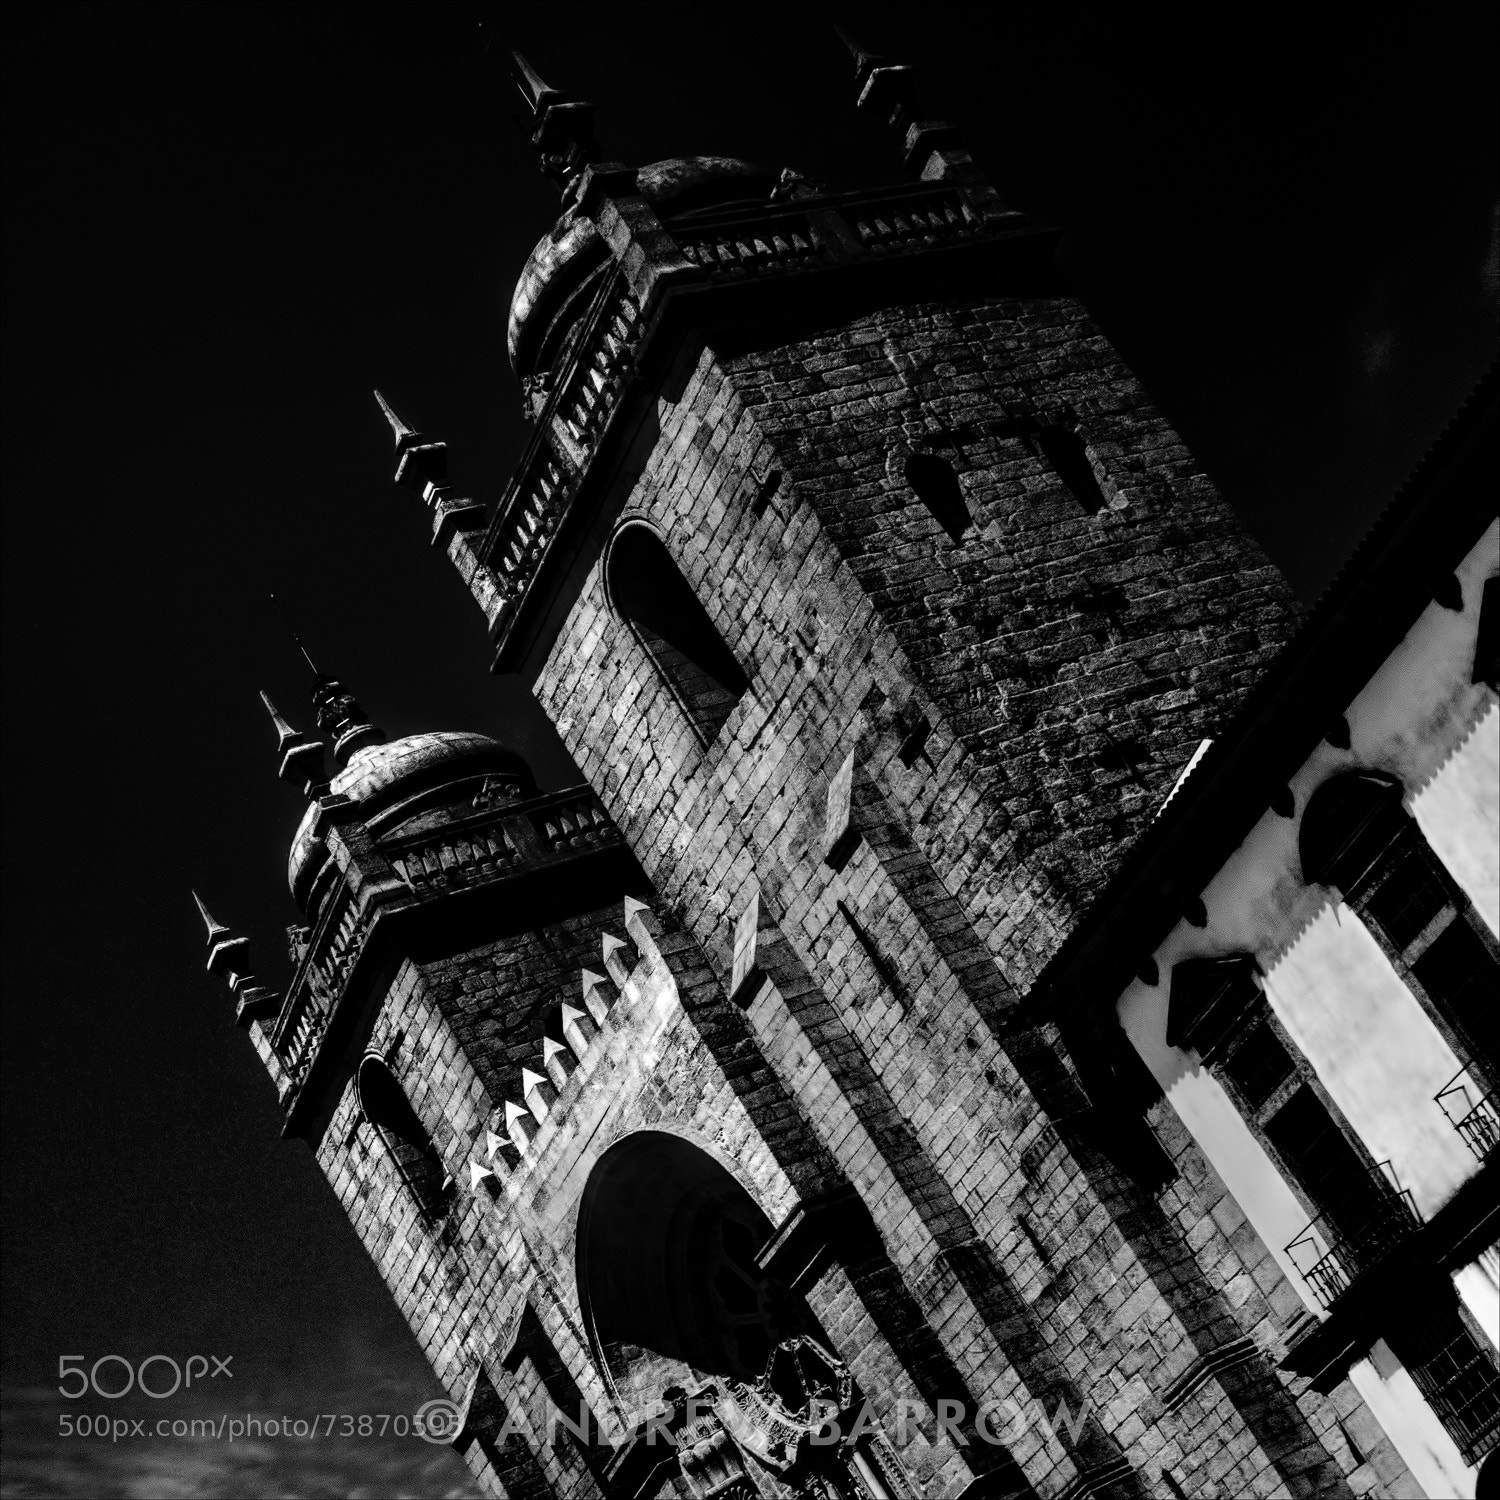 Photograph Oporto Cathedral by Andrew Barrow LRPS on 500px